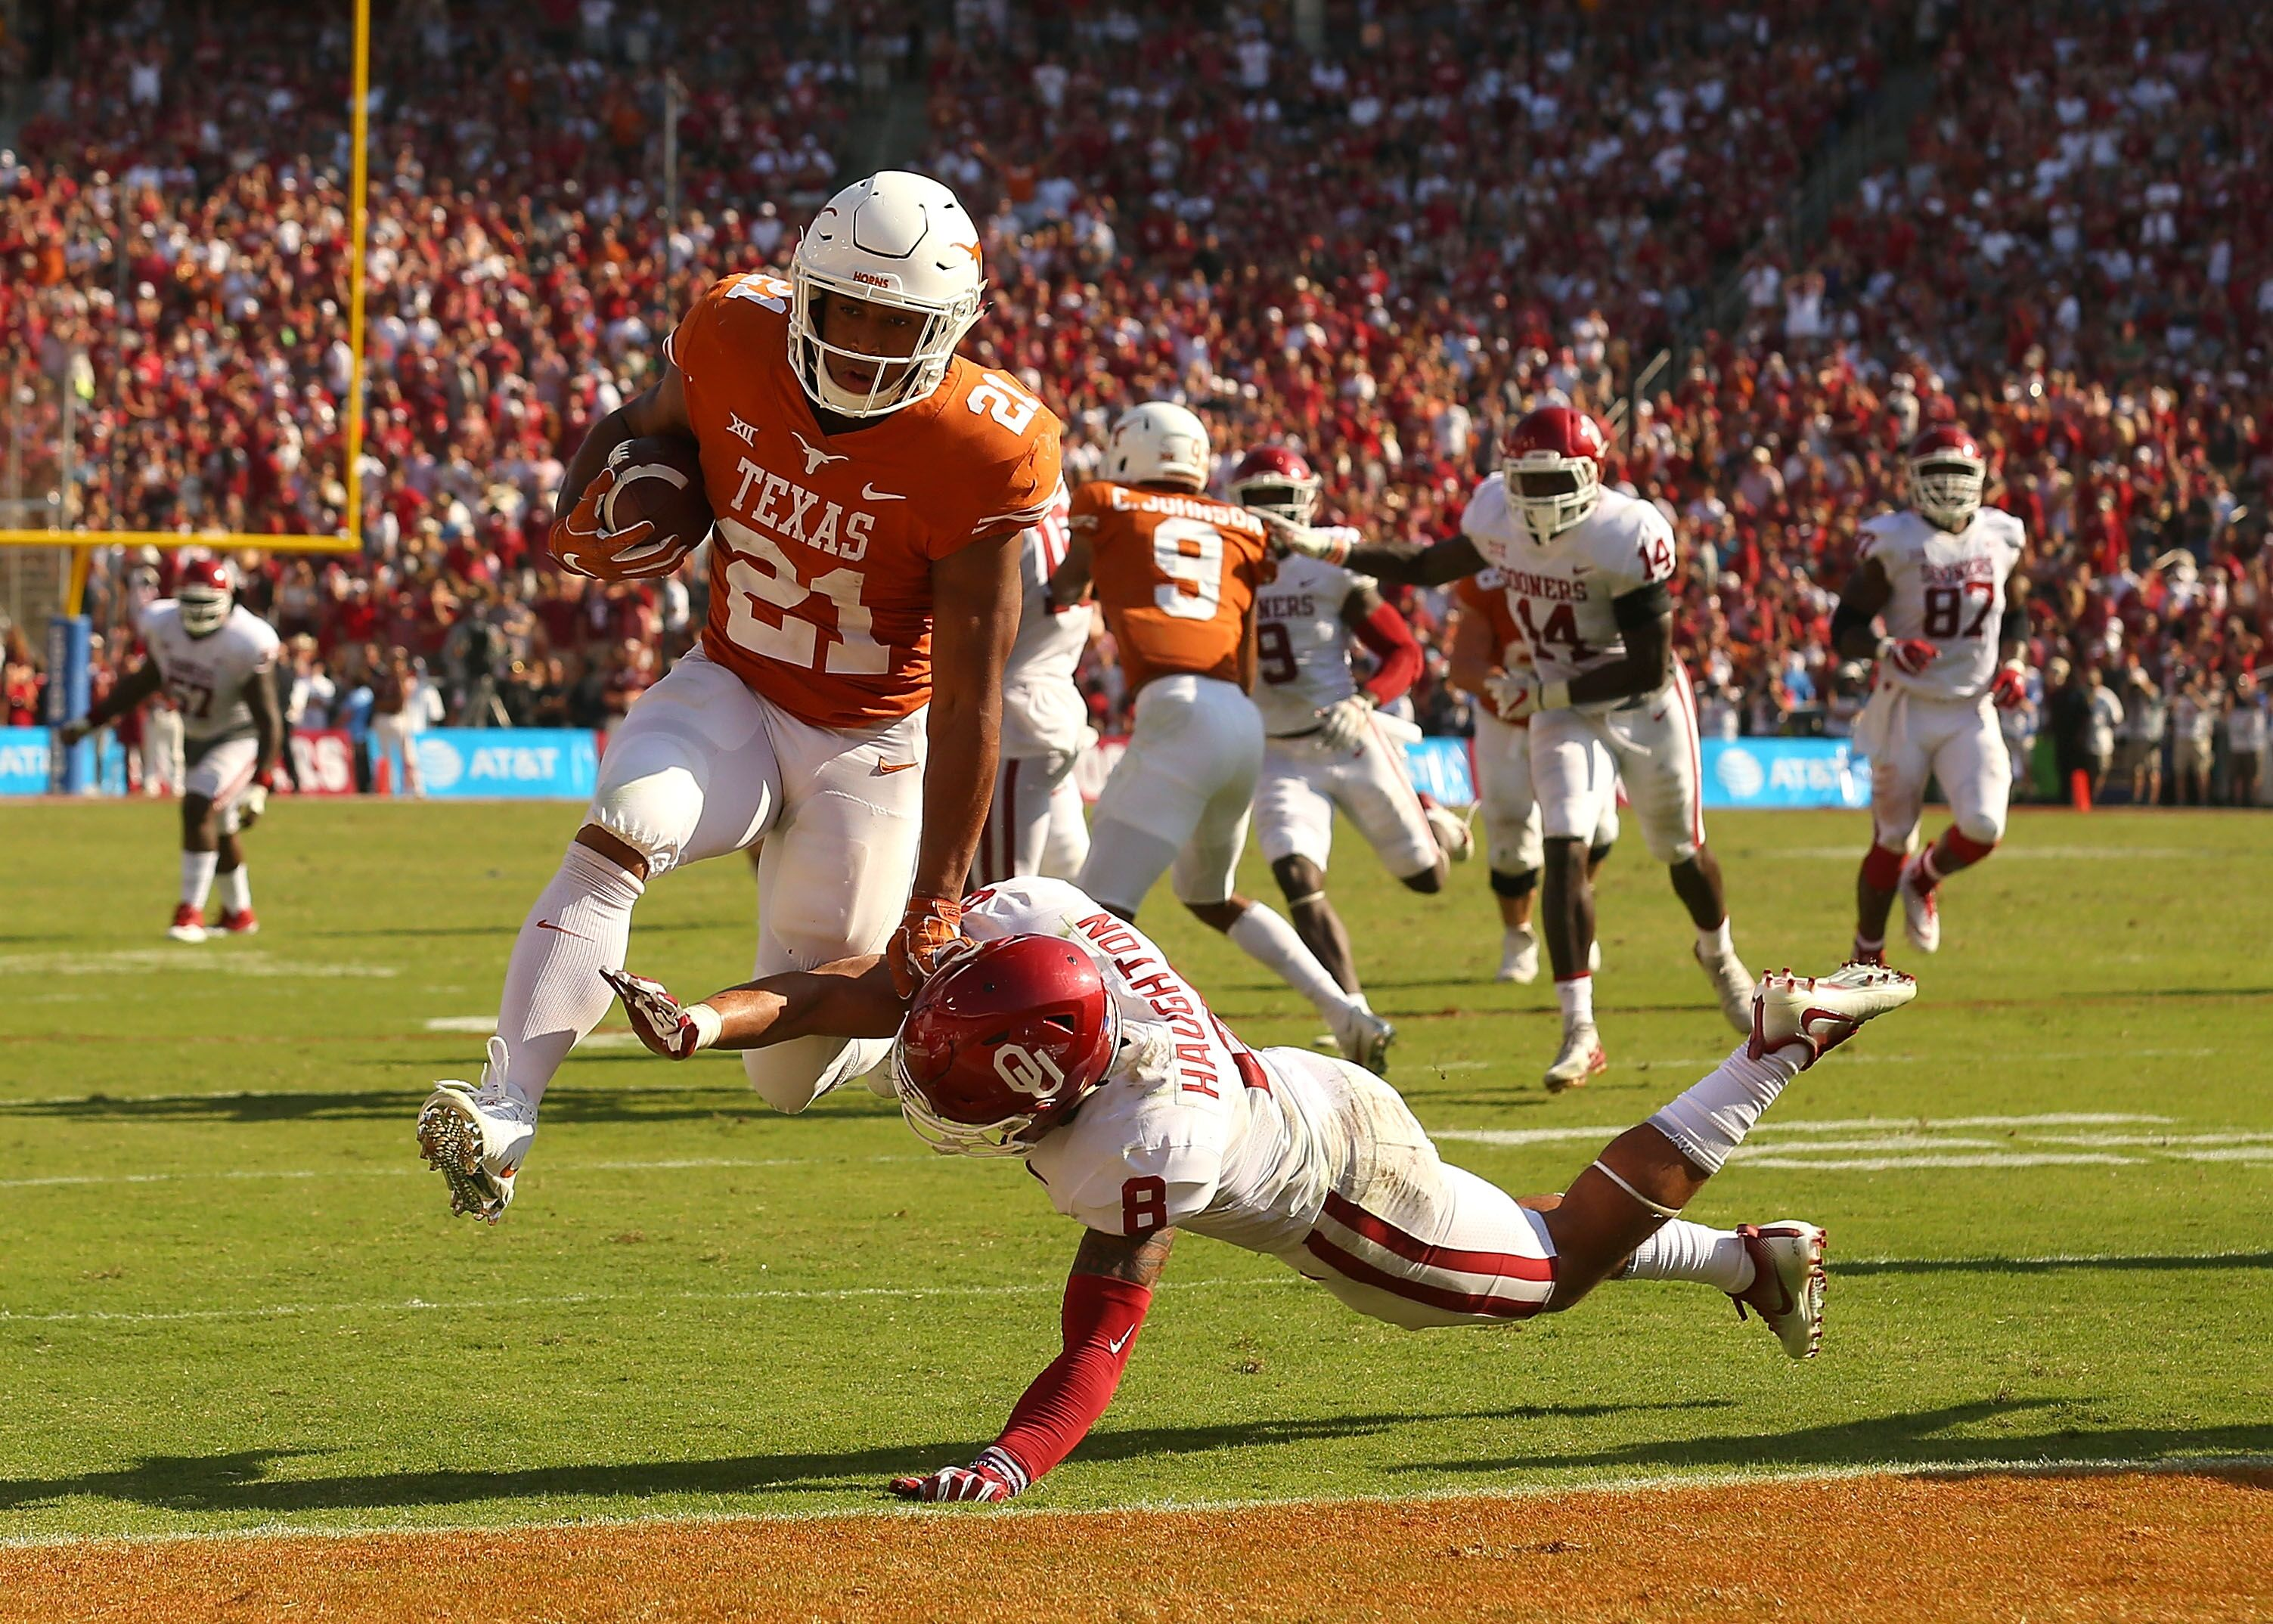 Texas Football: Longhorns lose another late game vs. Oklahoma